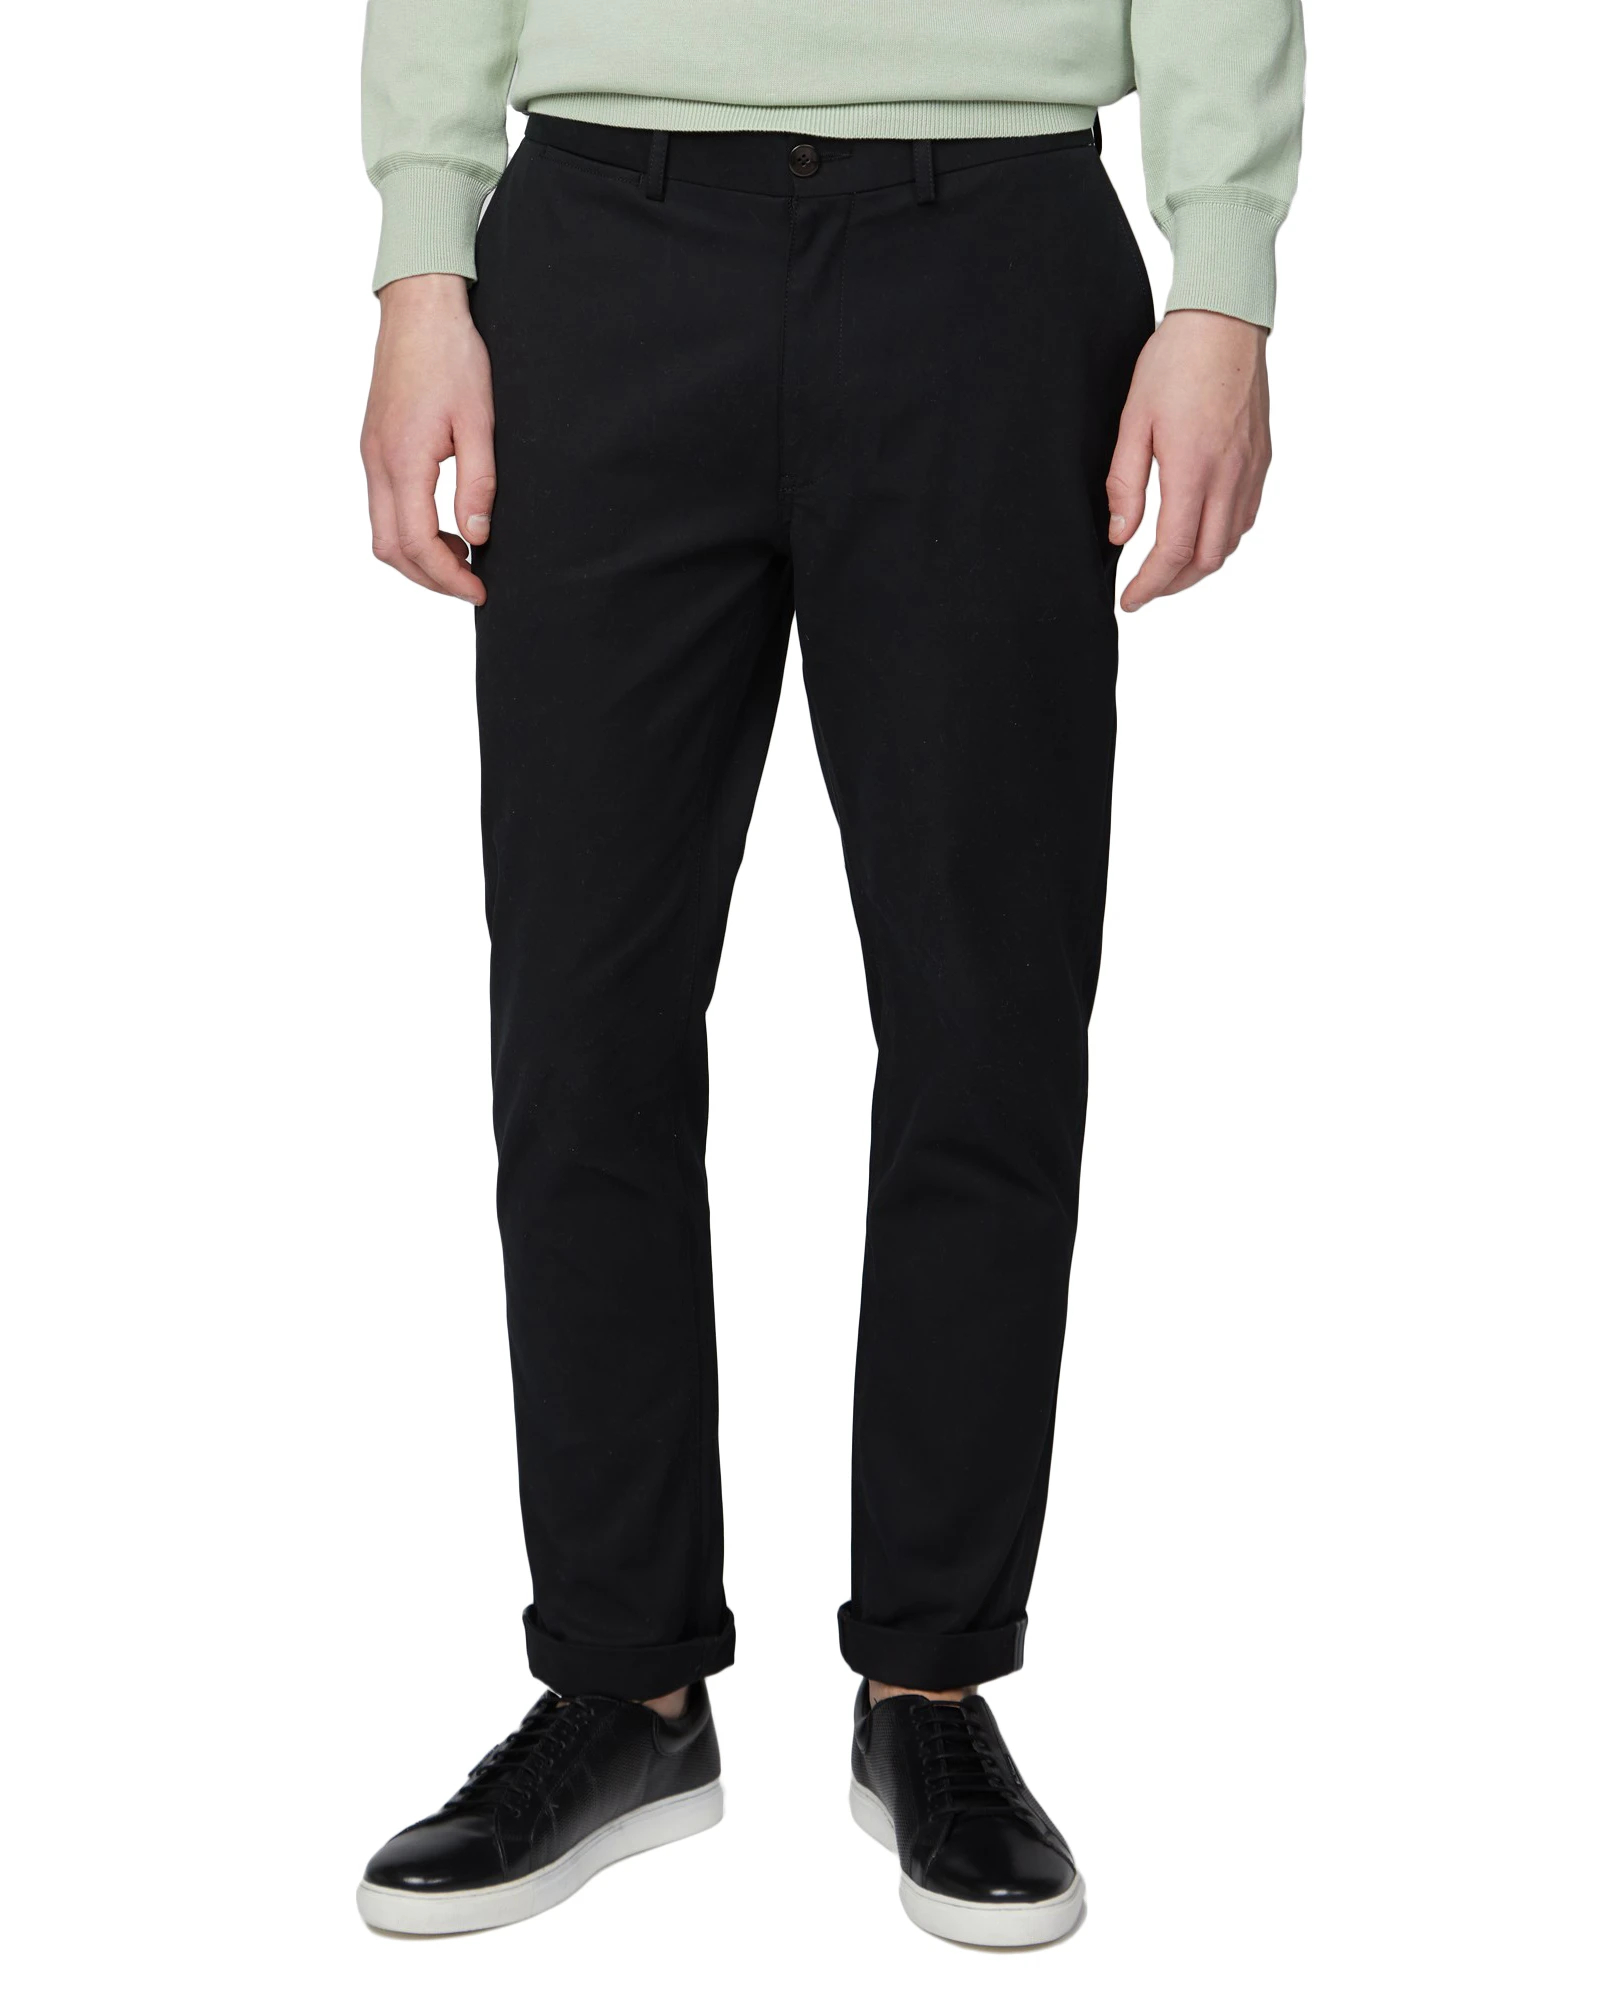 Ben Sherman black signature slim stretch chino khaki pants